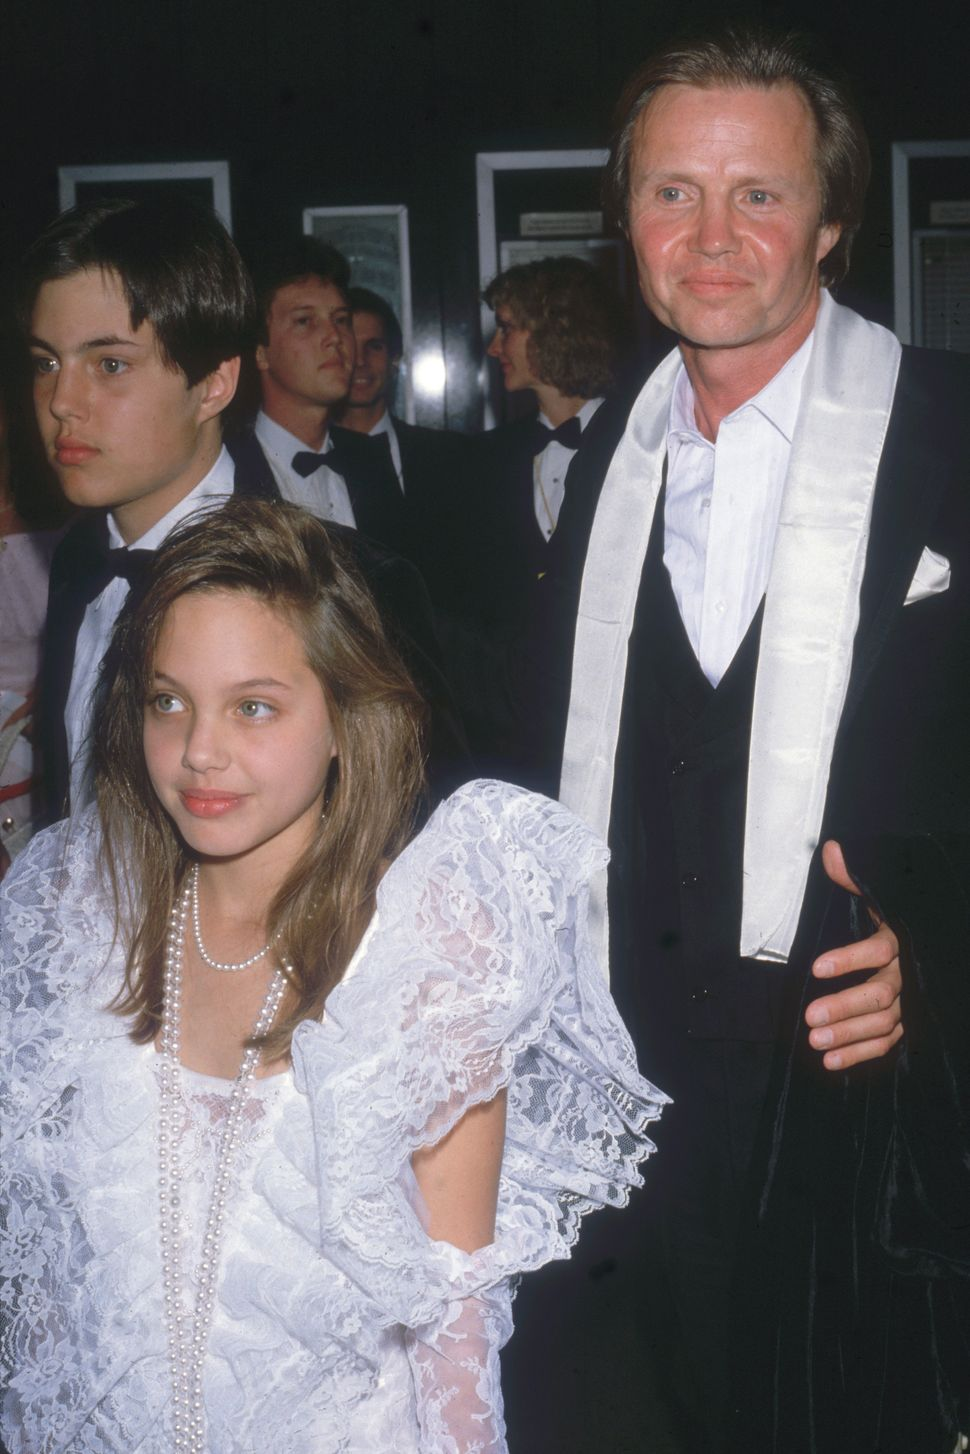 Jon Voight at the 58th annual Academy Awards with his son James Haven and daughter Angelina Jolie in 1986.